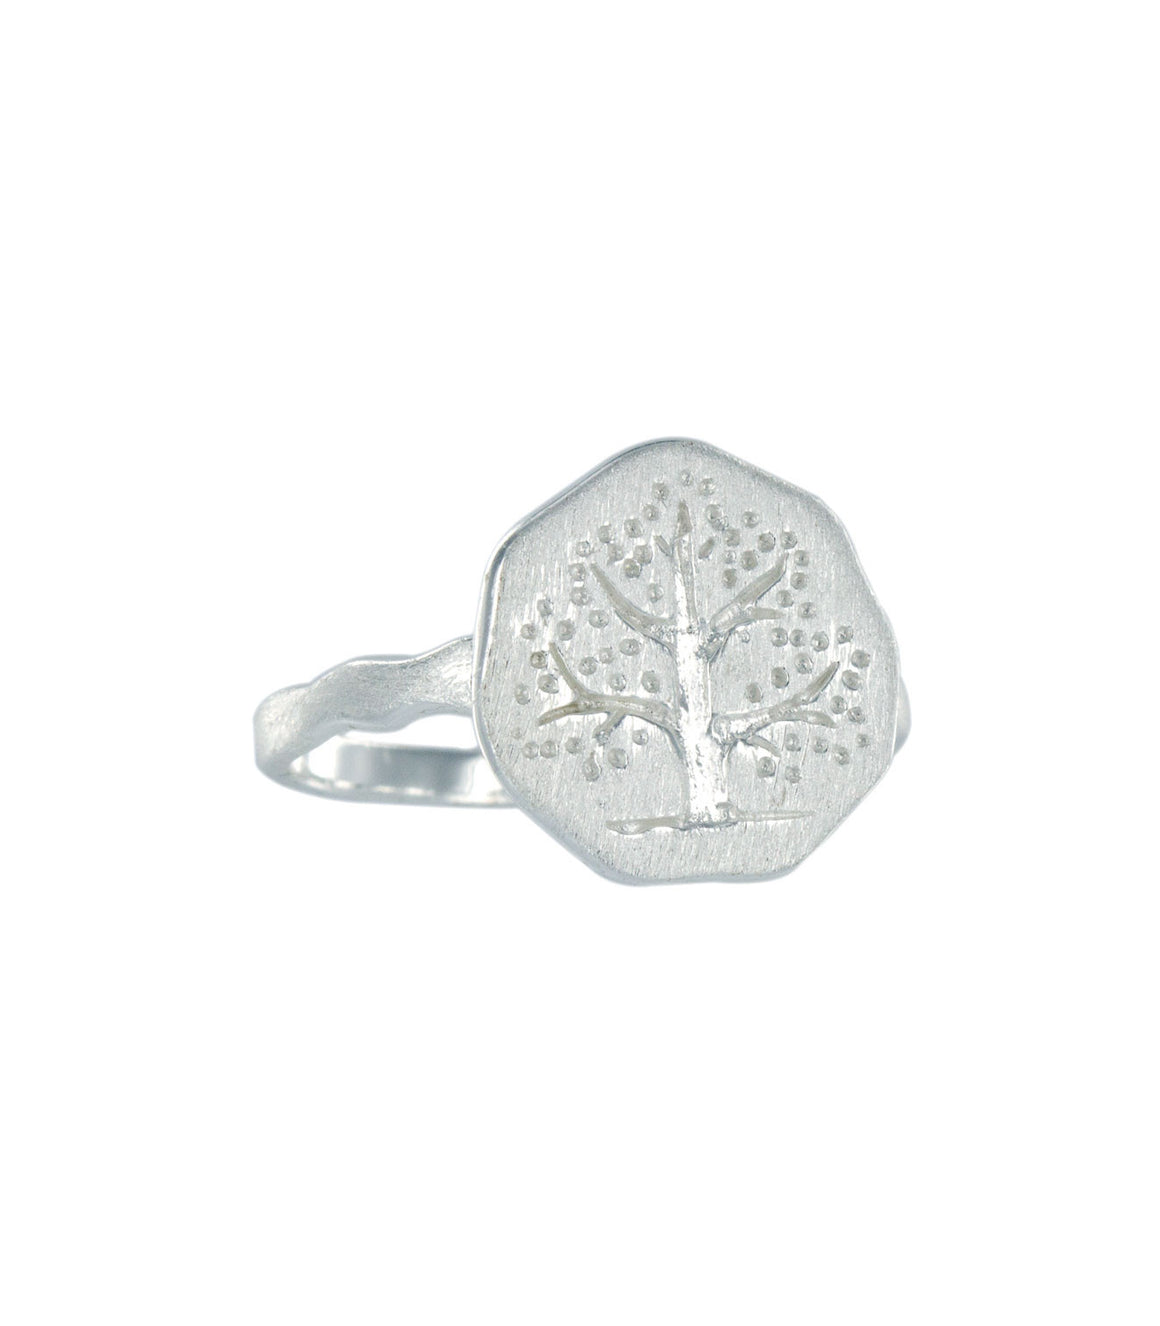 Tree wax seal crest sterling silver ring.